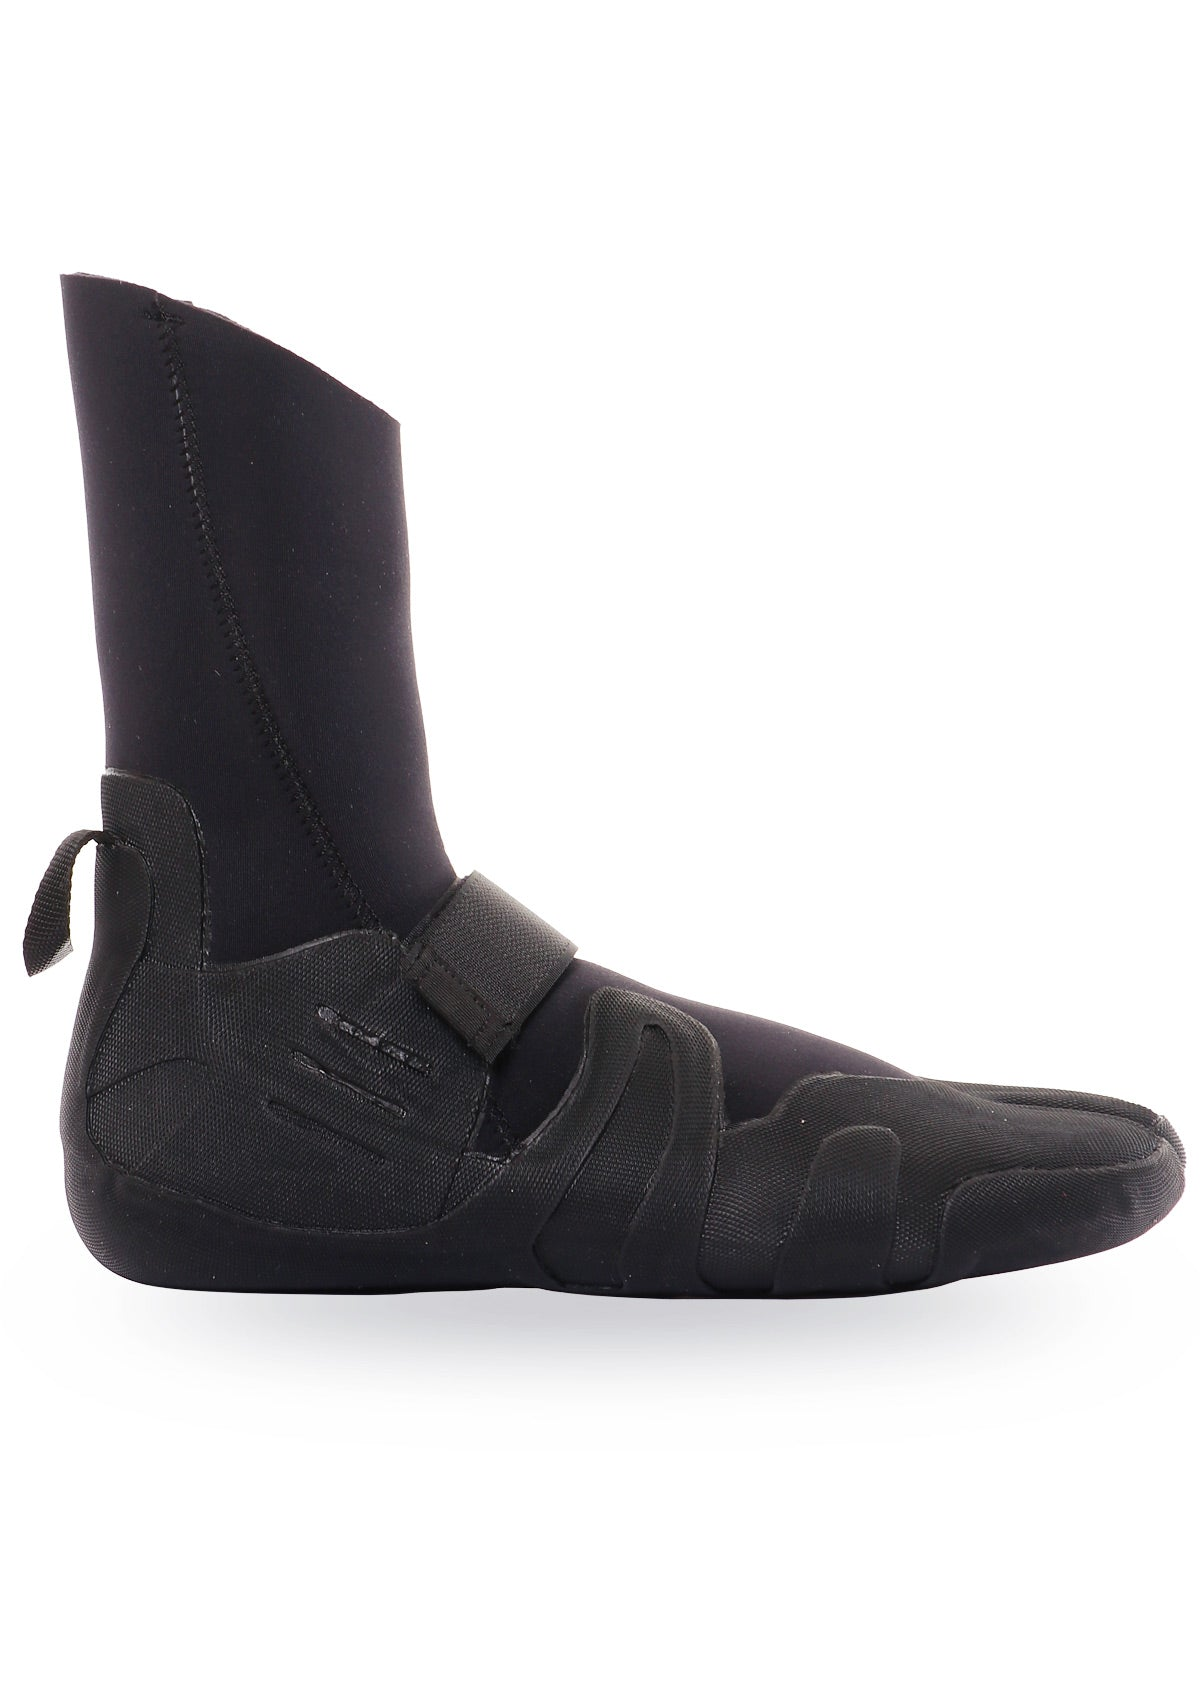 needessentials 4mm booties surfing black non branded